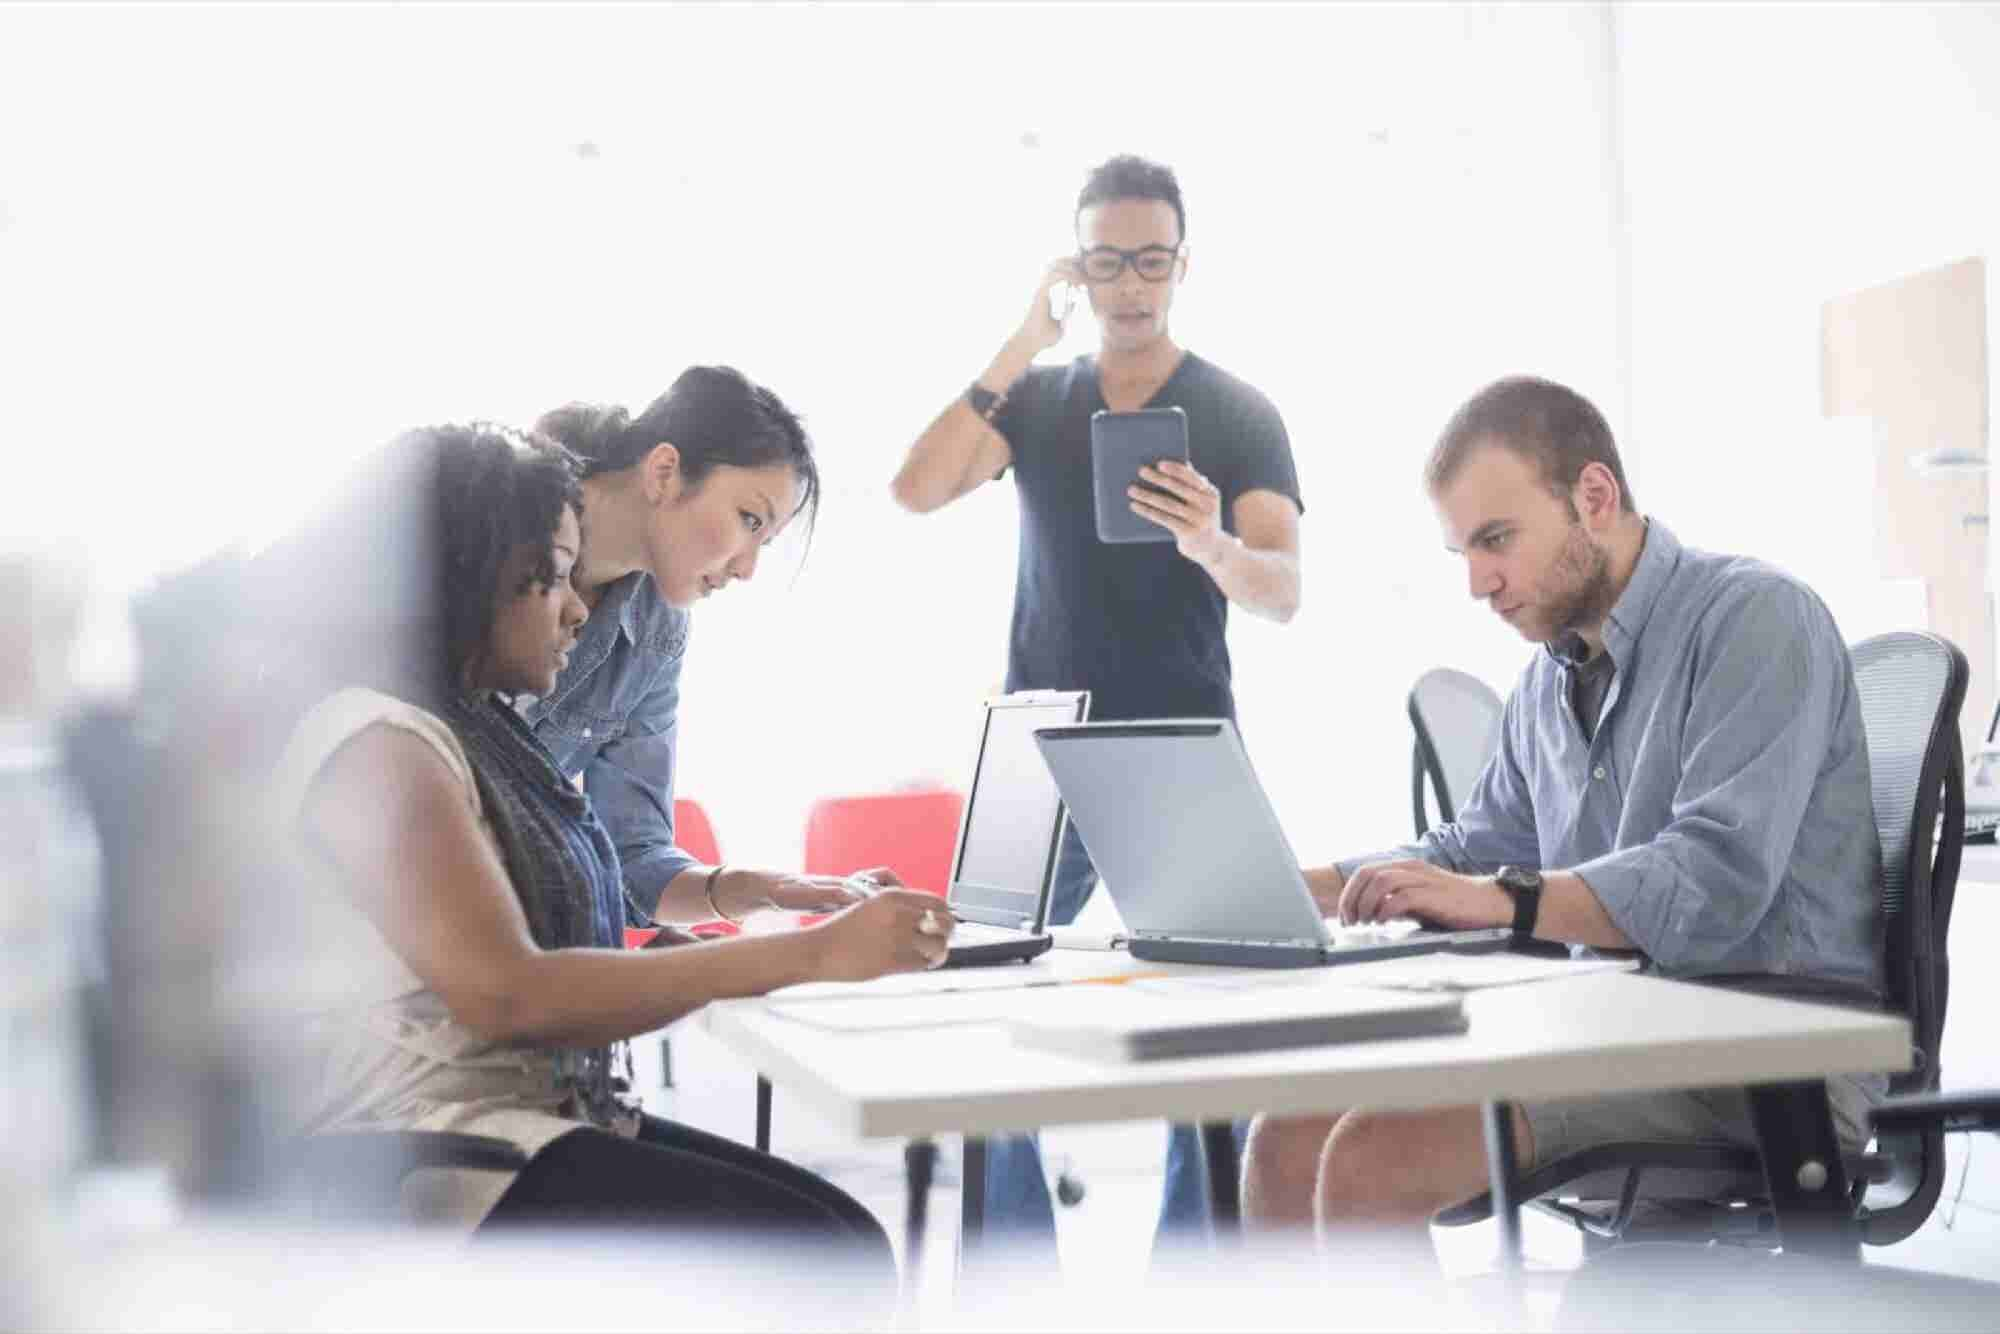 Millennials Make Themselves Miserable Fretting About Work but Boomer C...